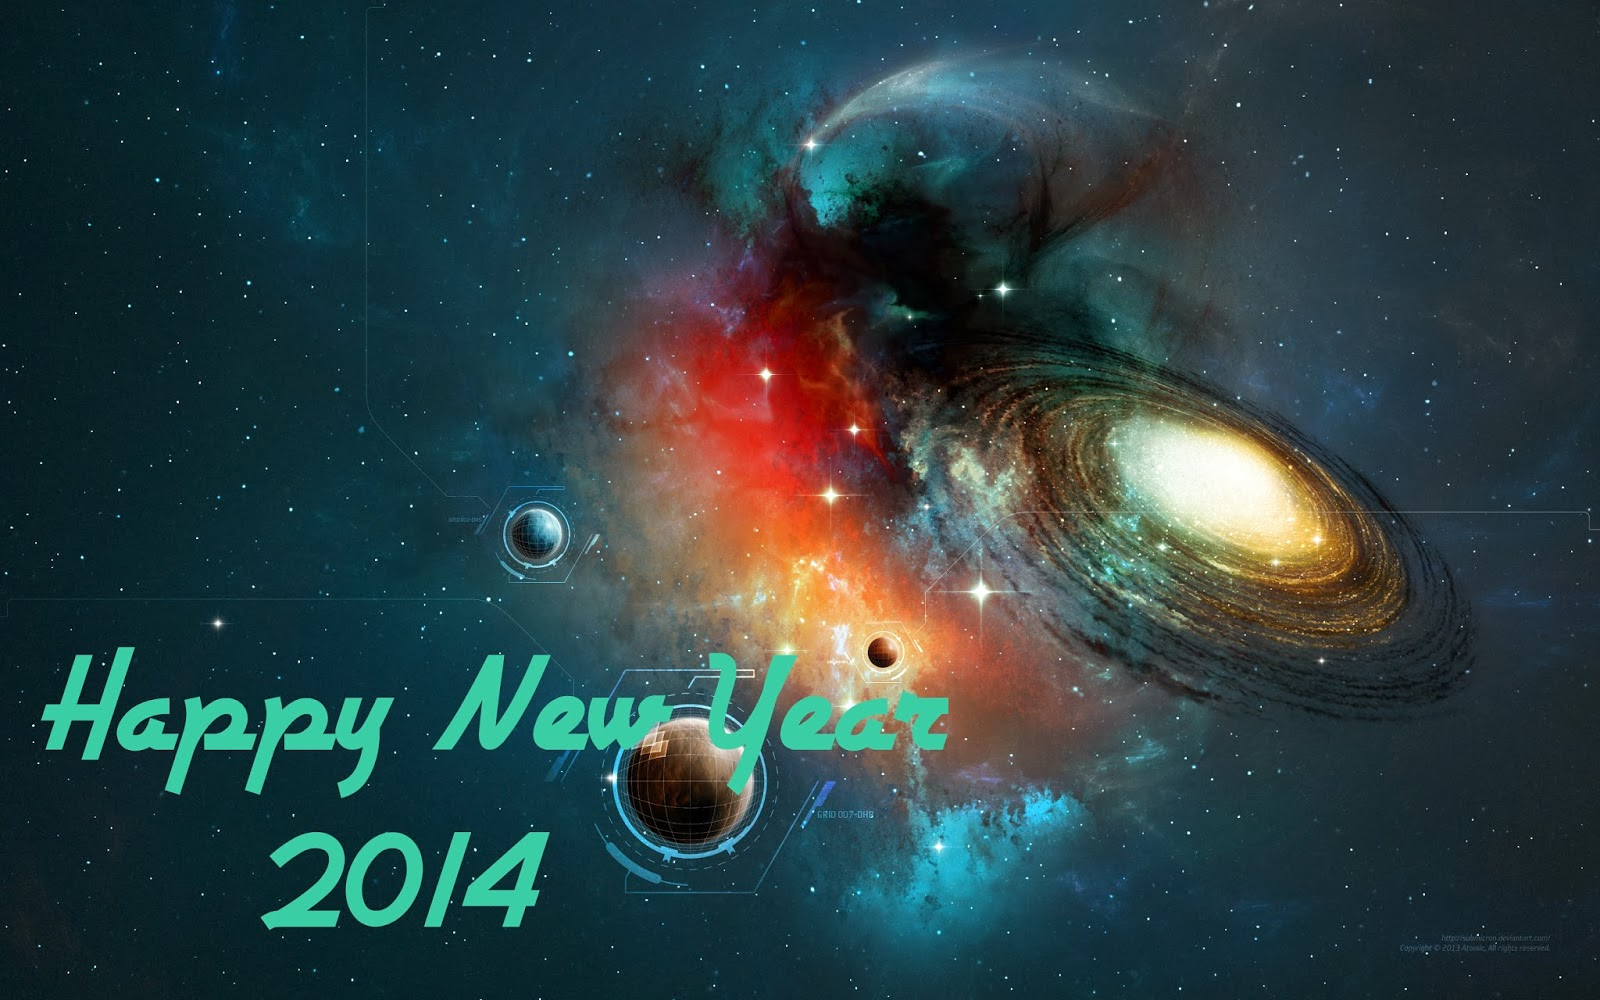 2014 Hd Wallpapers: Happy New Year 2014 Wallpaper